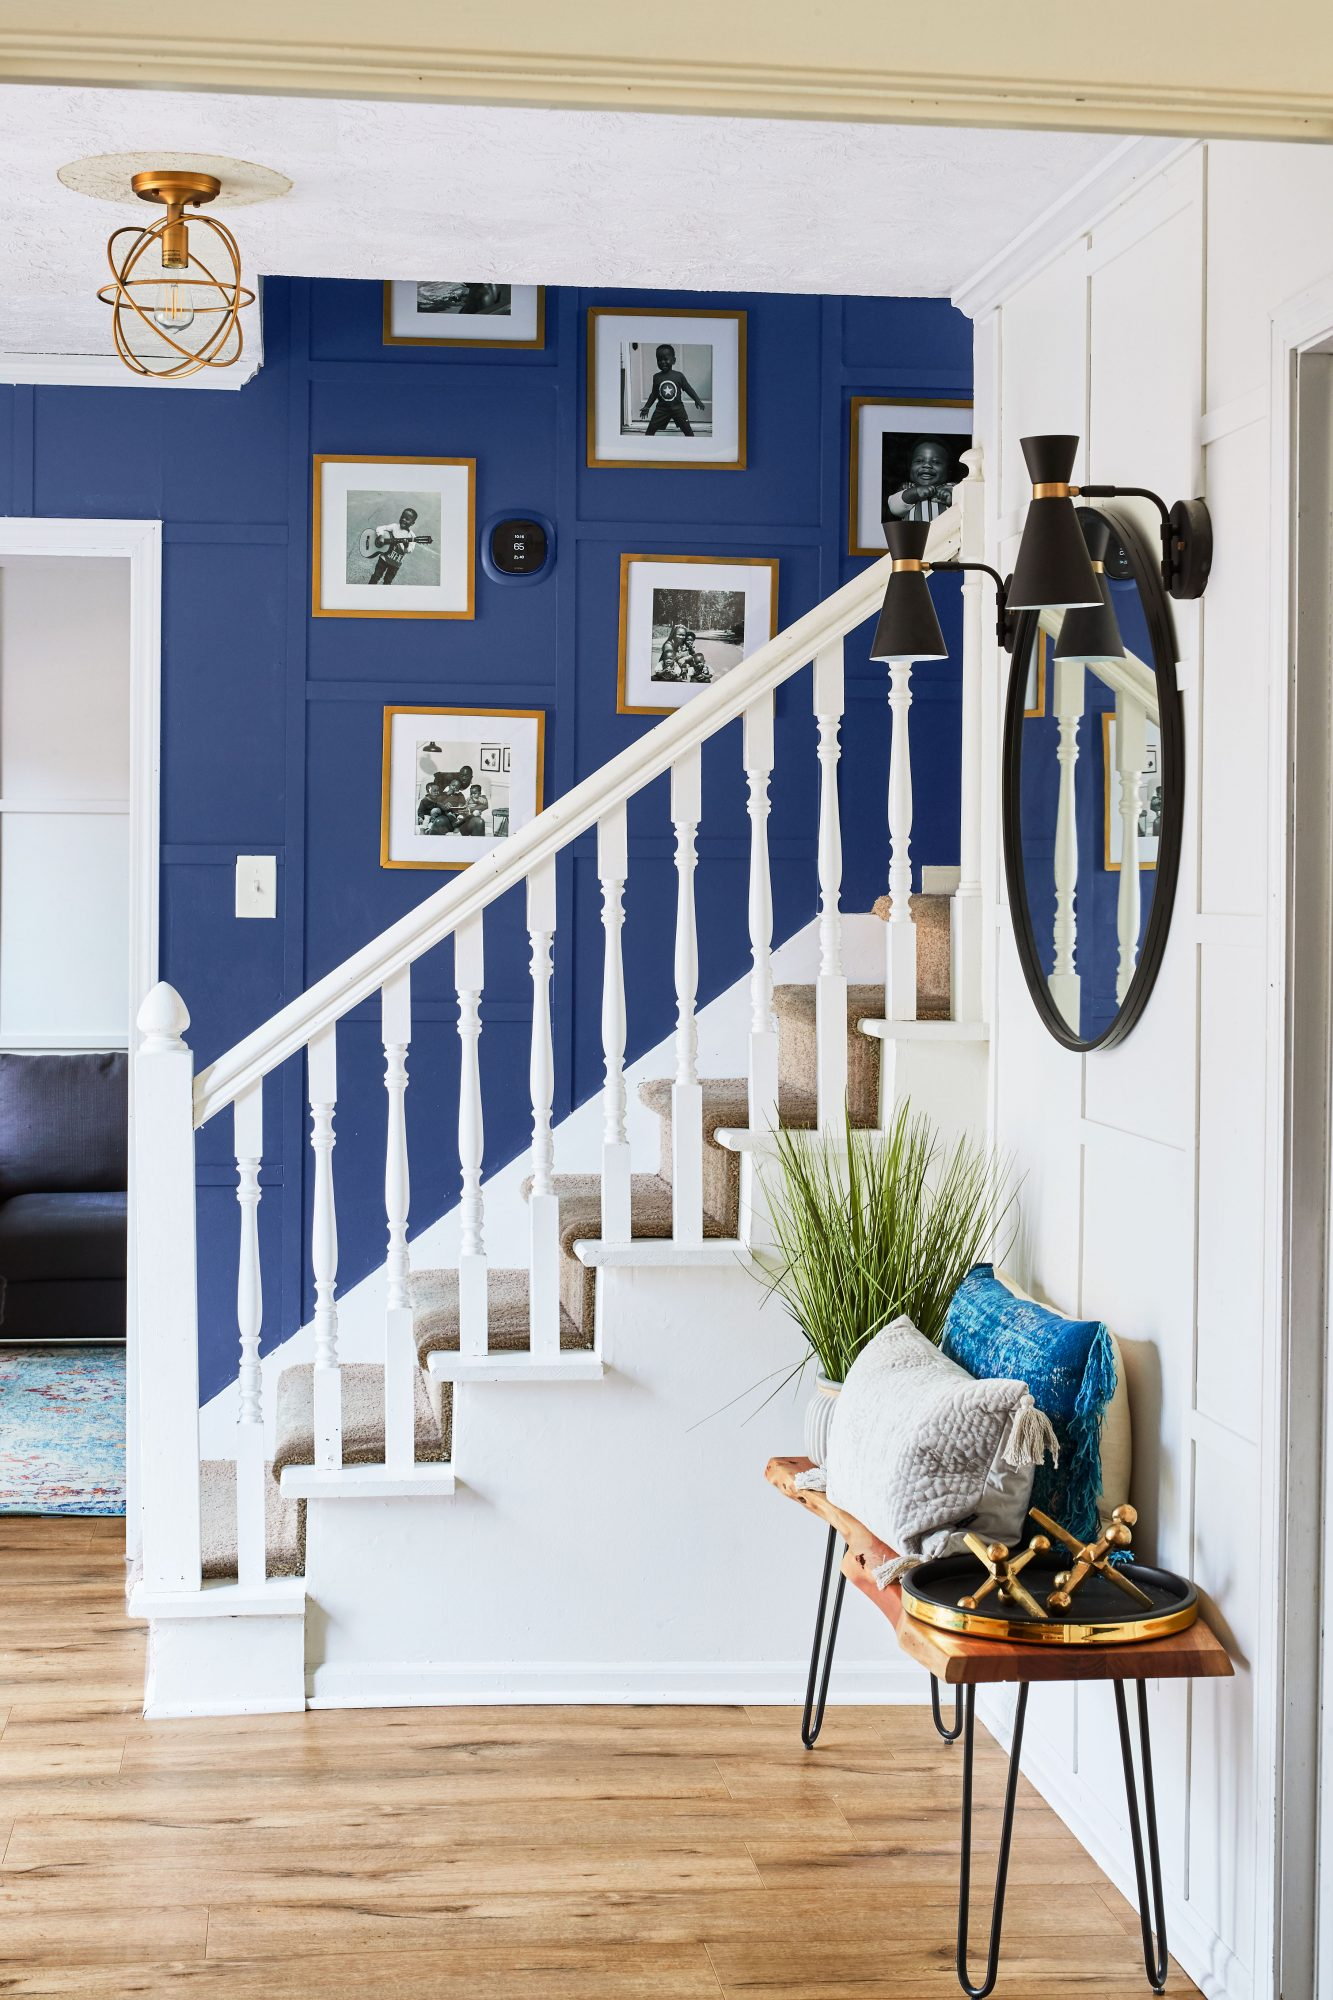 Entry Staircase with Charcoal Blue Feature Wall